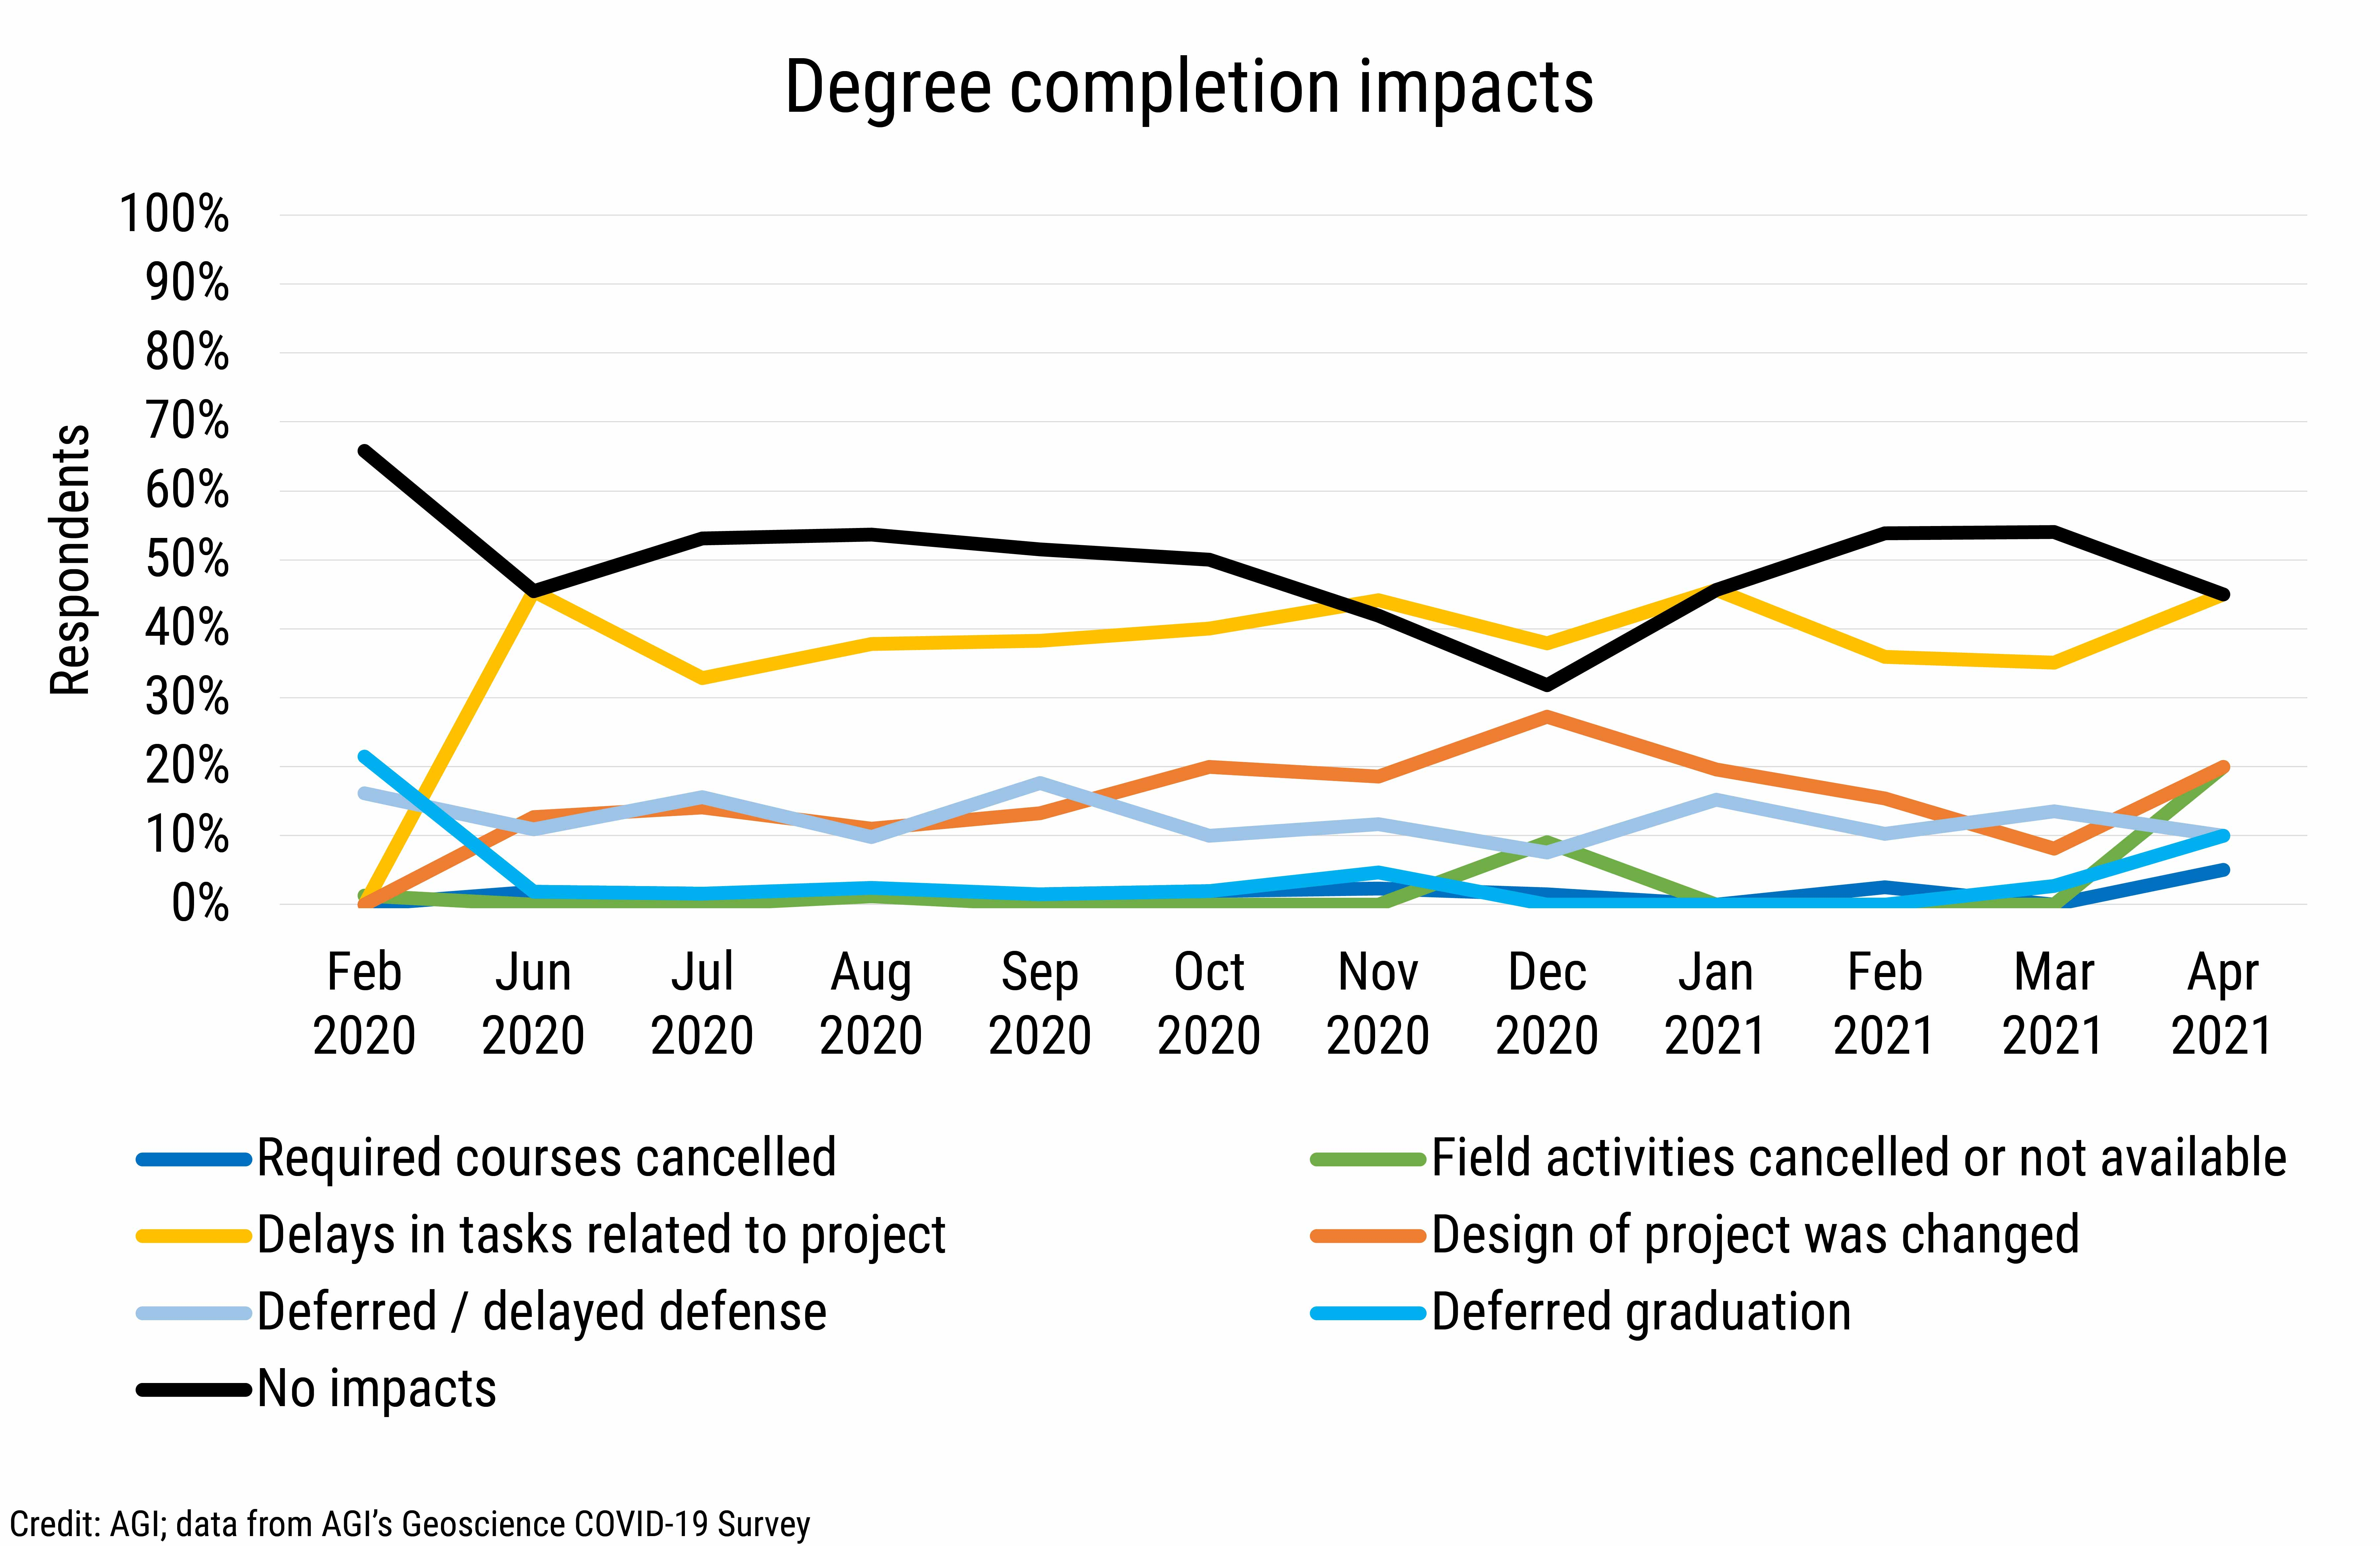 DB_2021-015 chart 01: Degree completion impacts (Credit: AGI; data from AGI's Geoscience COVID-19 Survey)